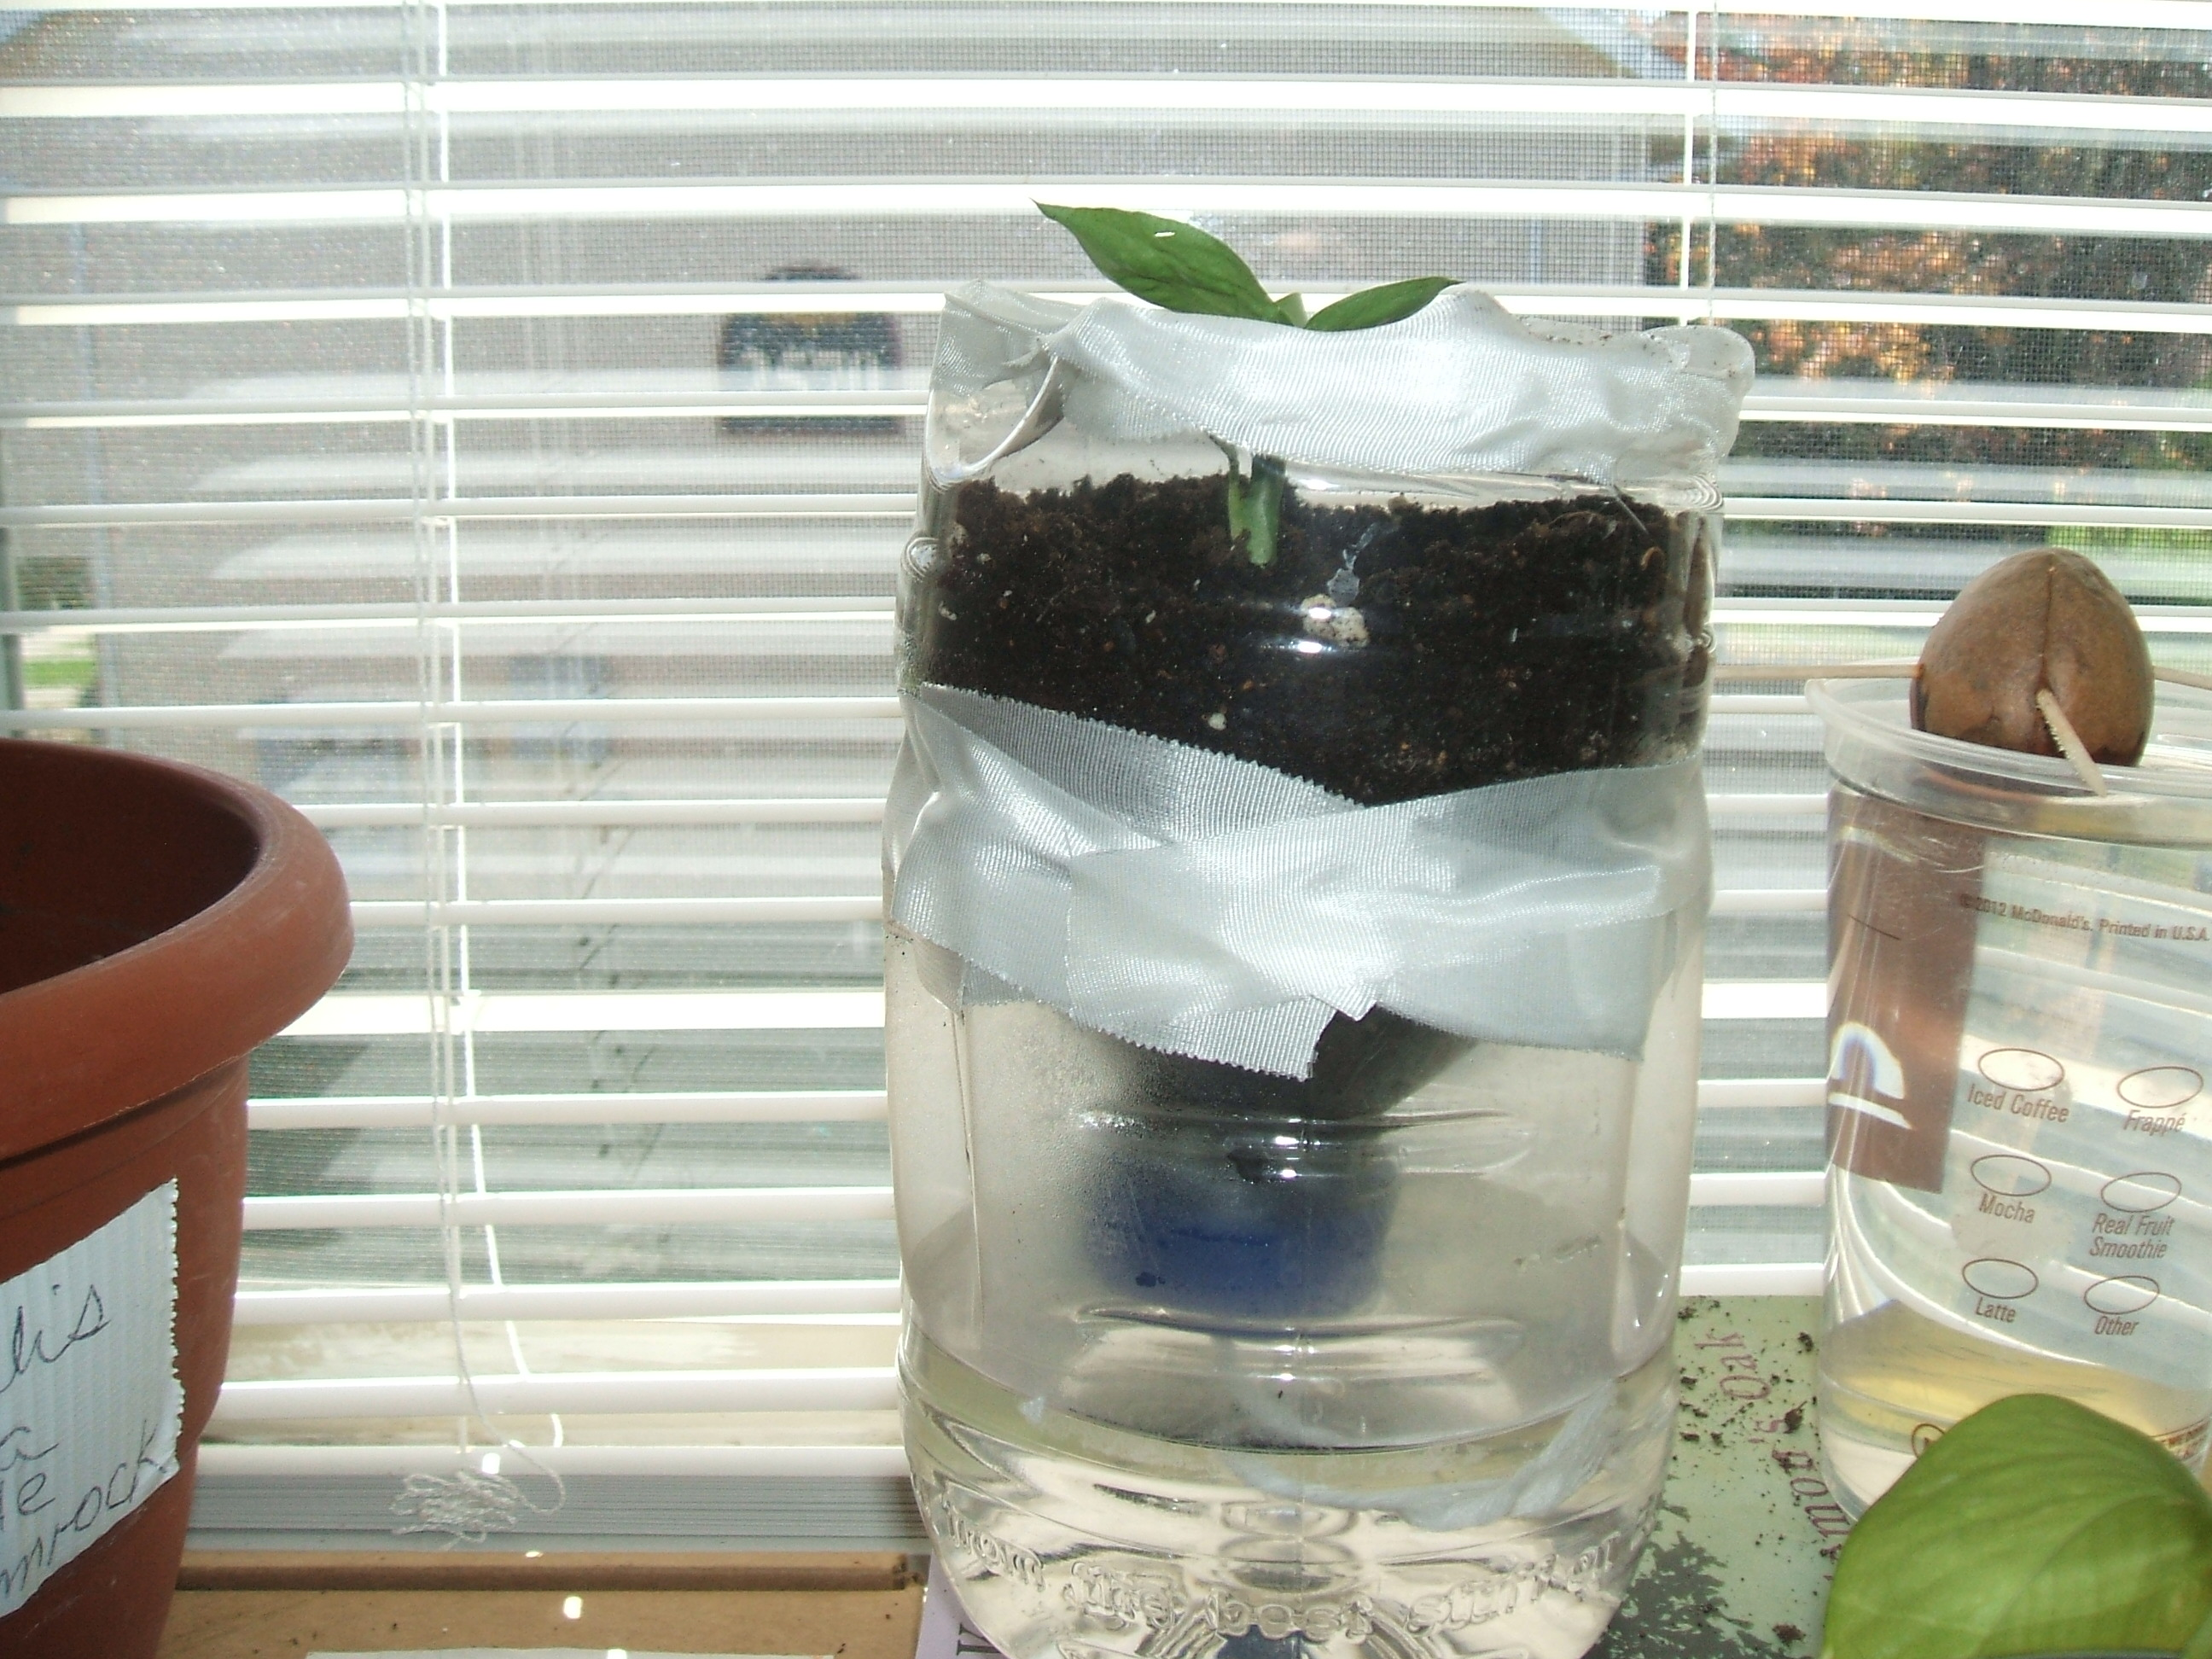 I built a self waterer plant in less than 25 mins last night-candle-